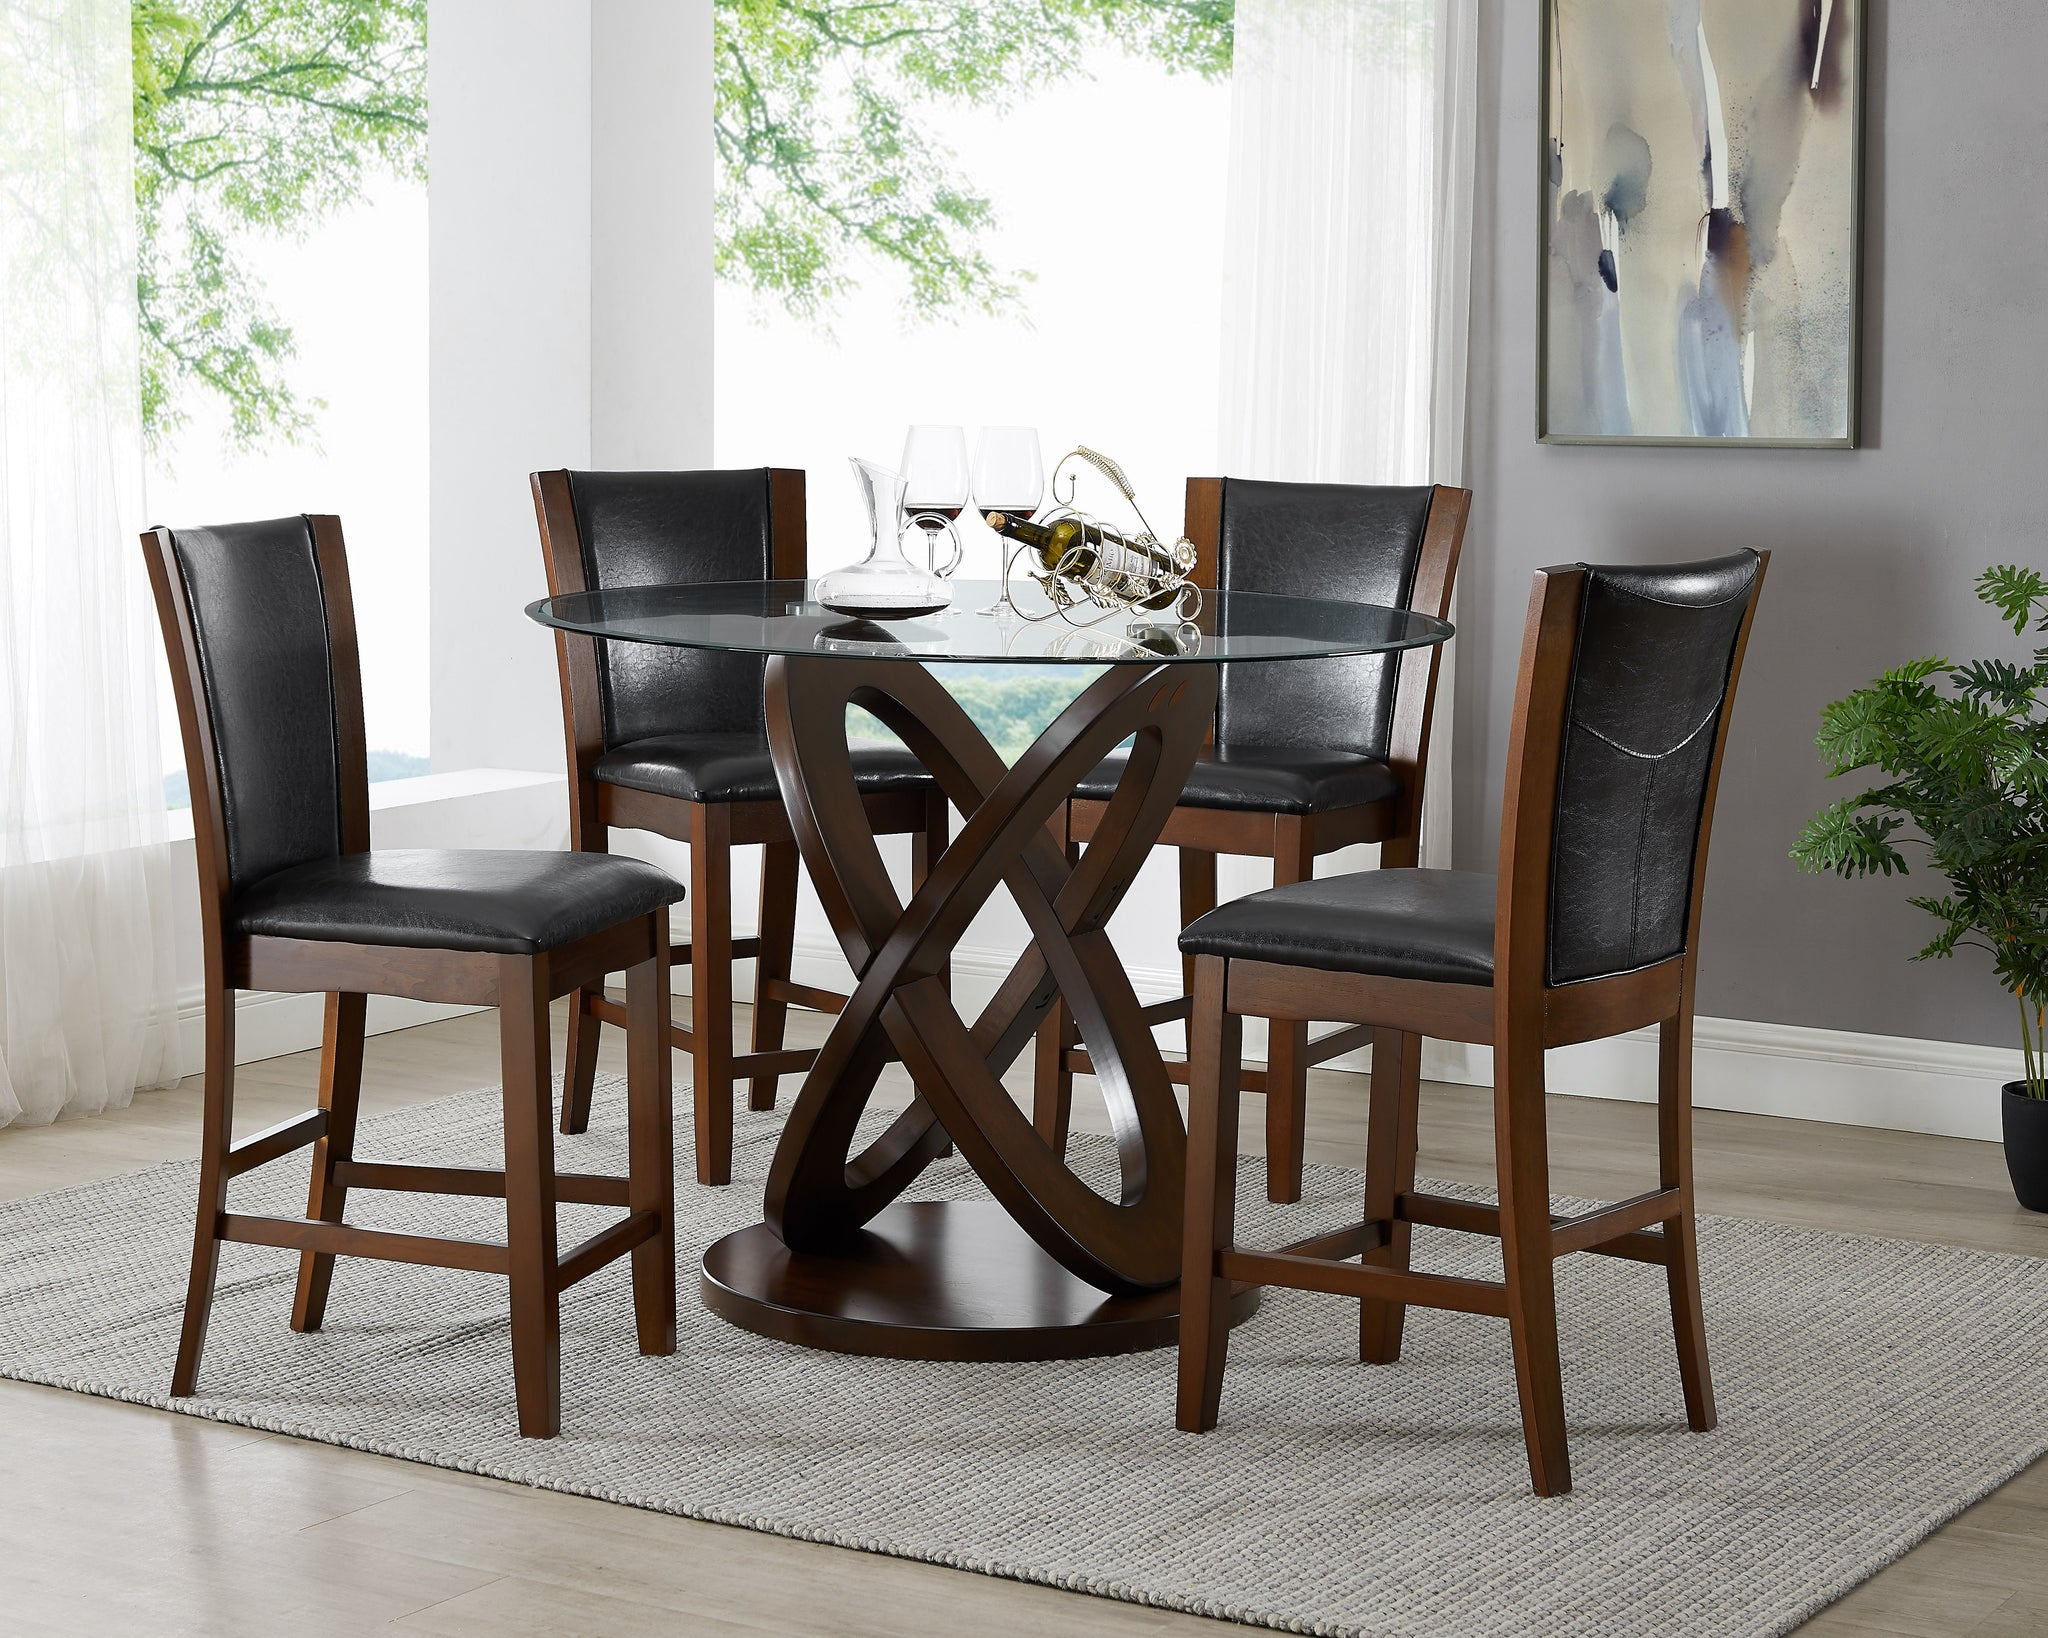 Cicicol Espresso 5PC Counter Height Glass Top Dining Table with Chairs